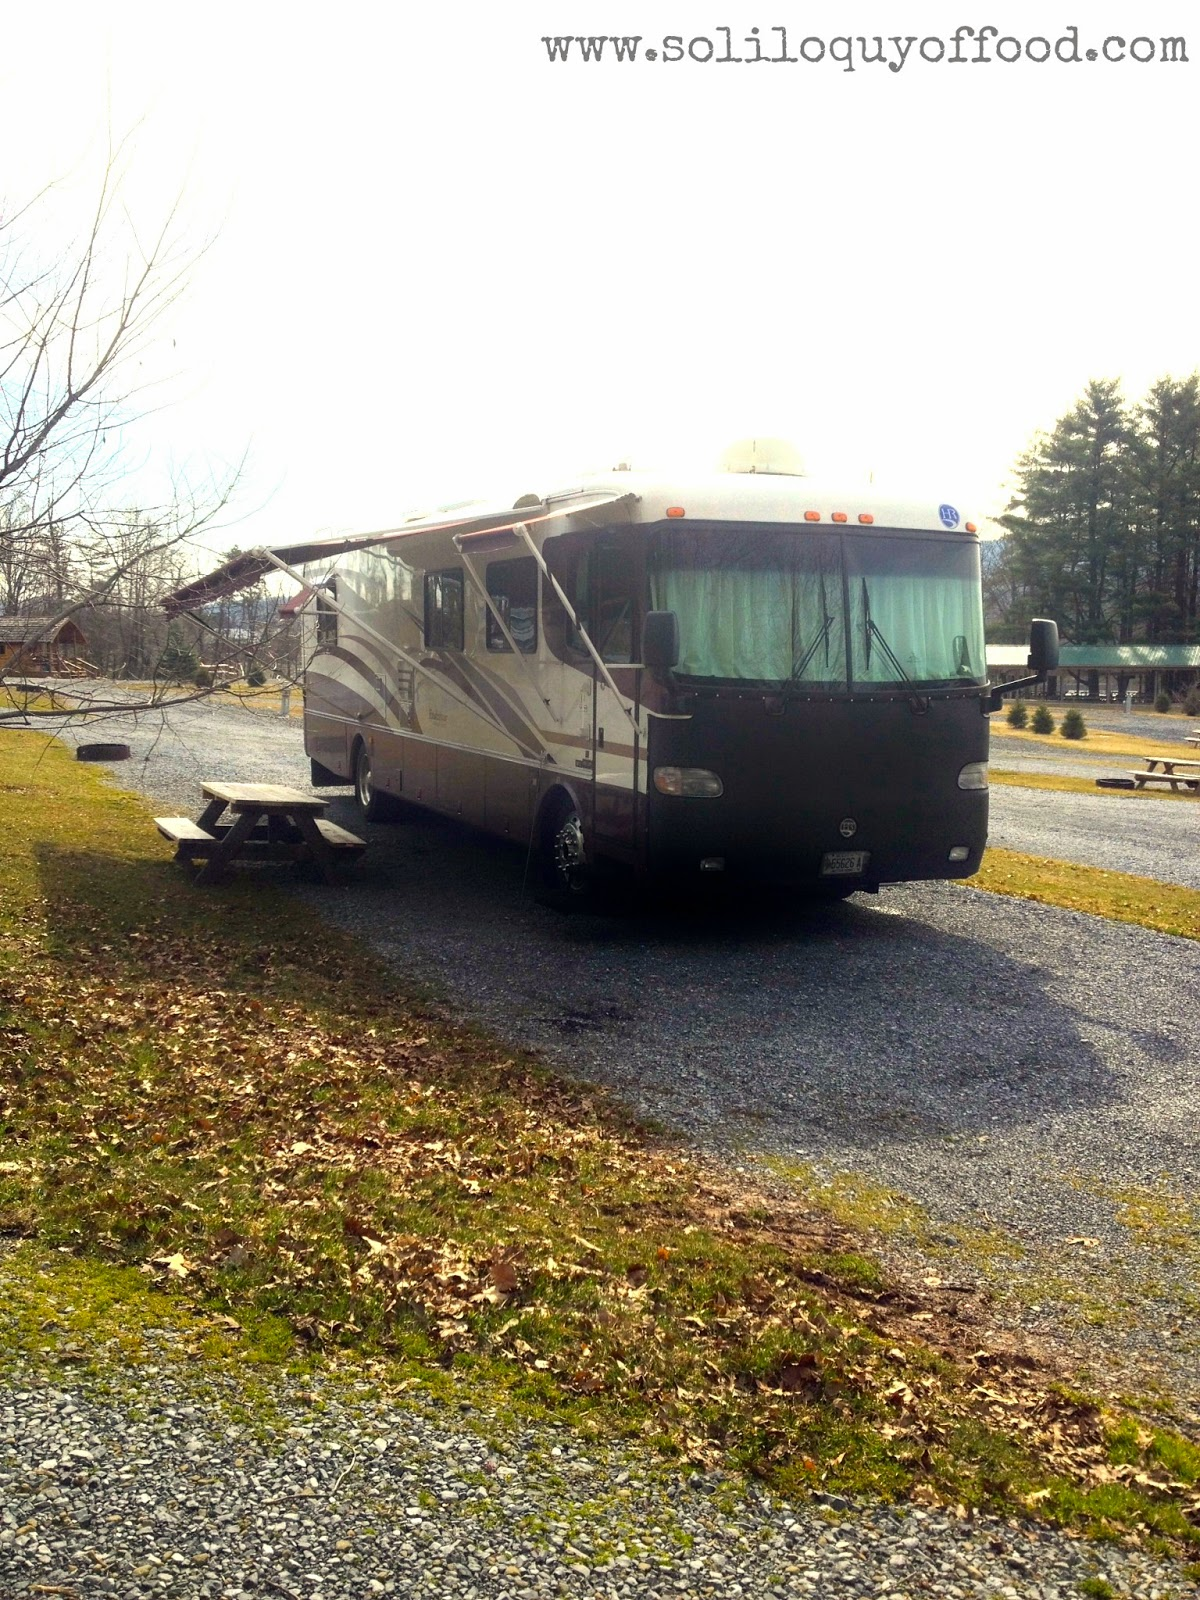 Chaos On Wheels | settled in for a few days at Twin Grove RV Resort in Pine Grove, PA  - www.soliloquyoffood.com